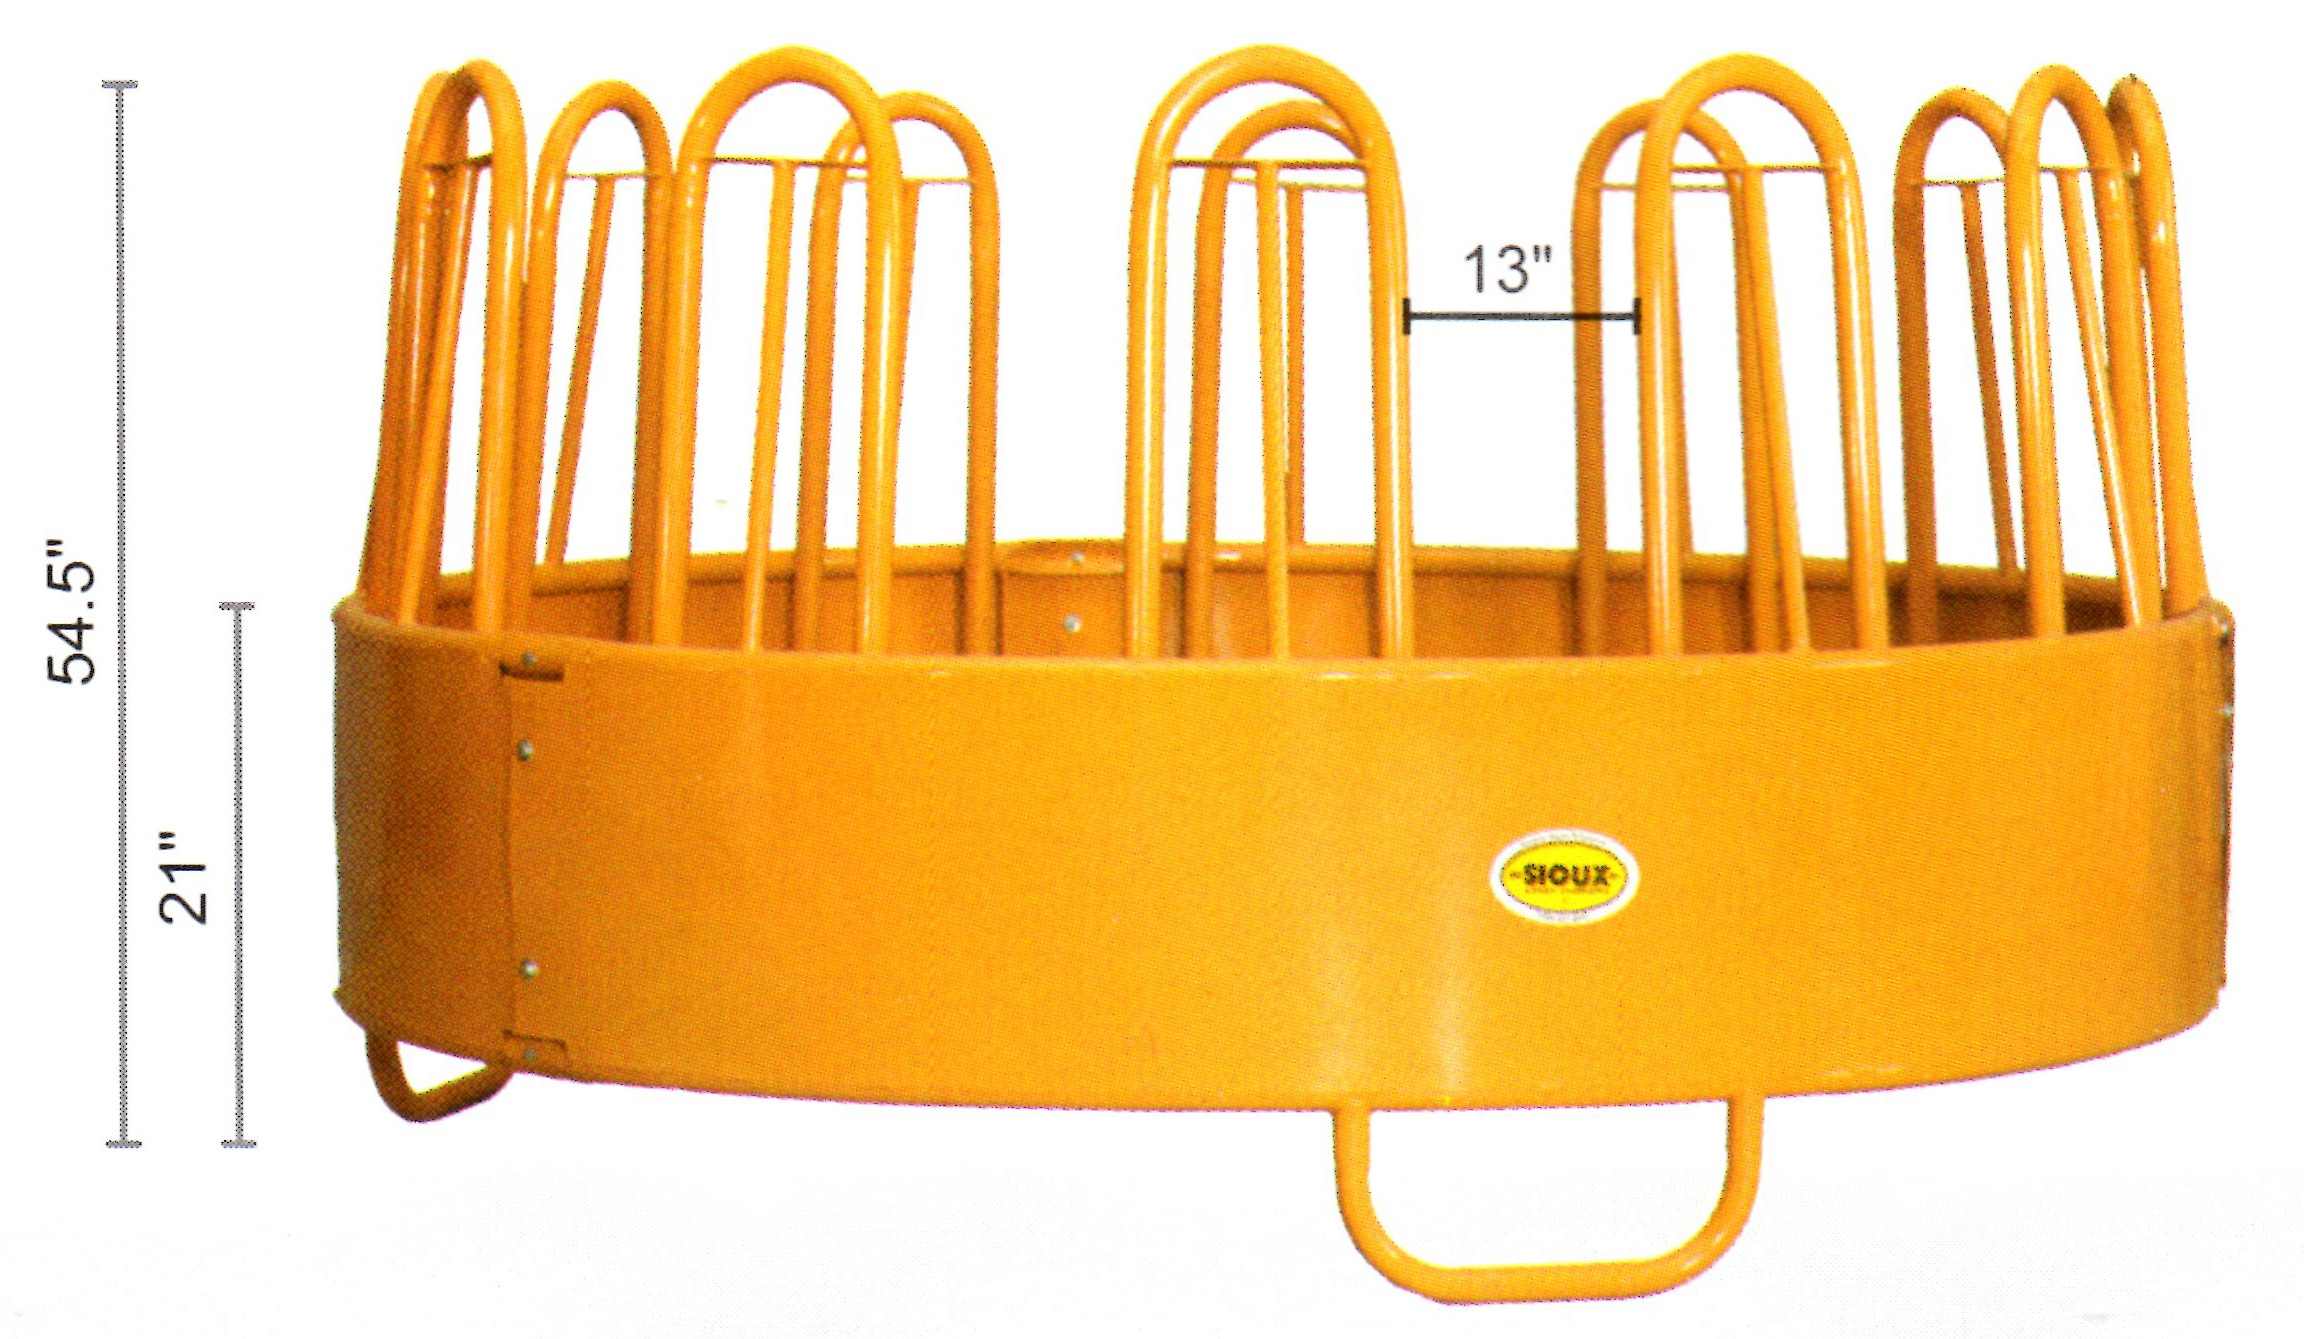 hay zoom feeder tech in product at mini horse bags nylon dura saddlery schneider d